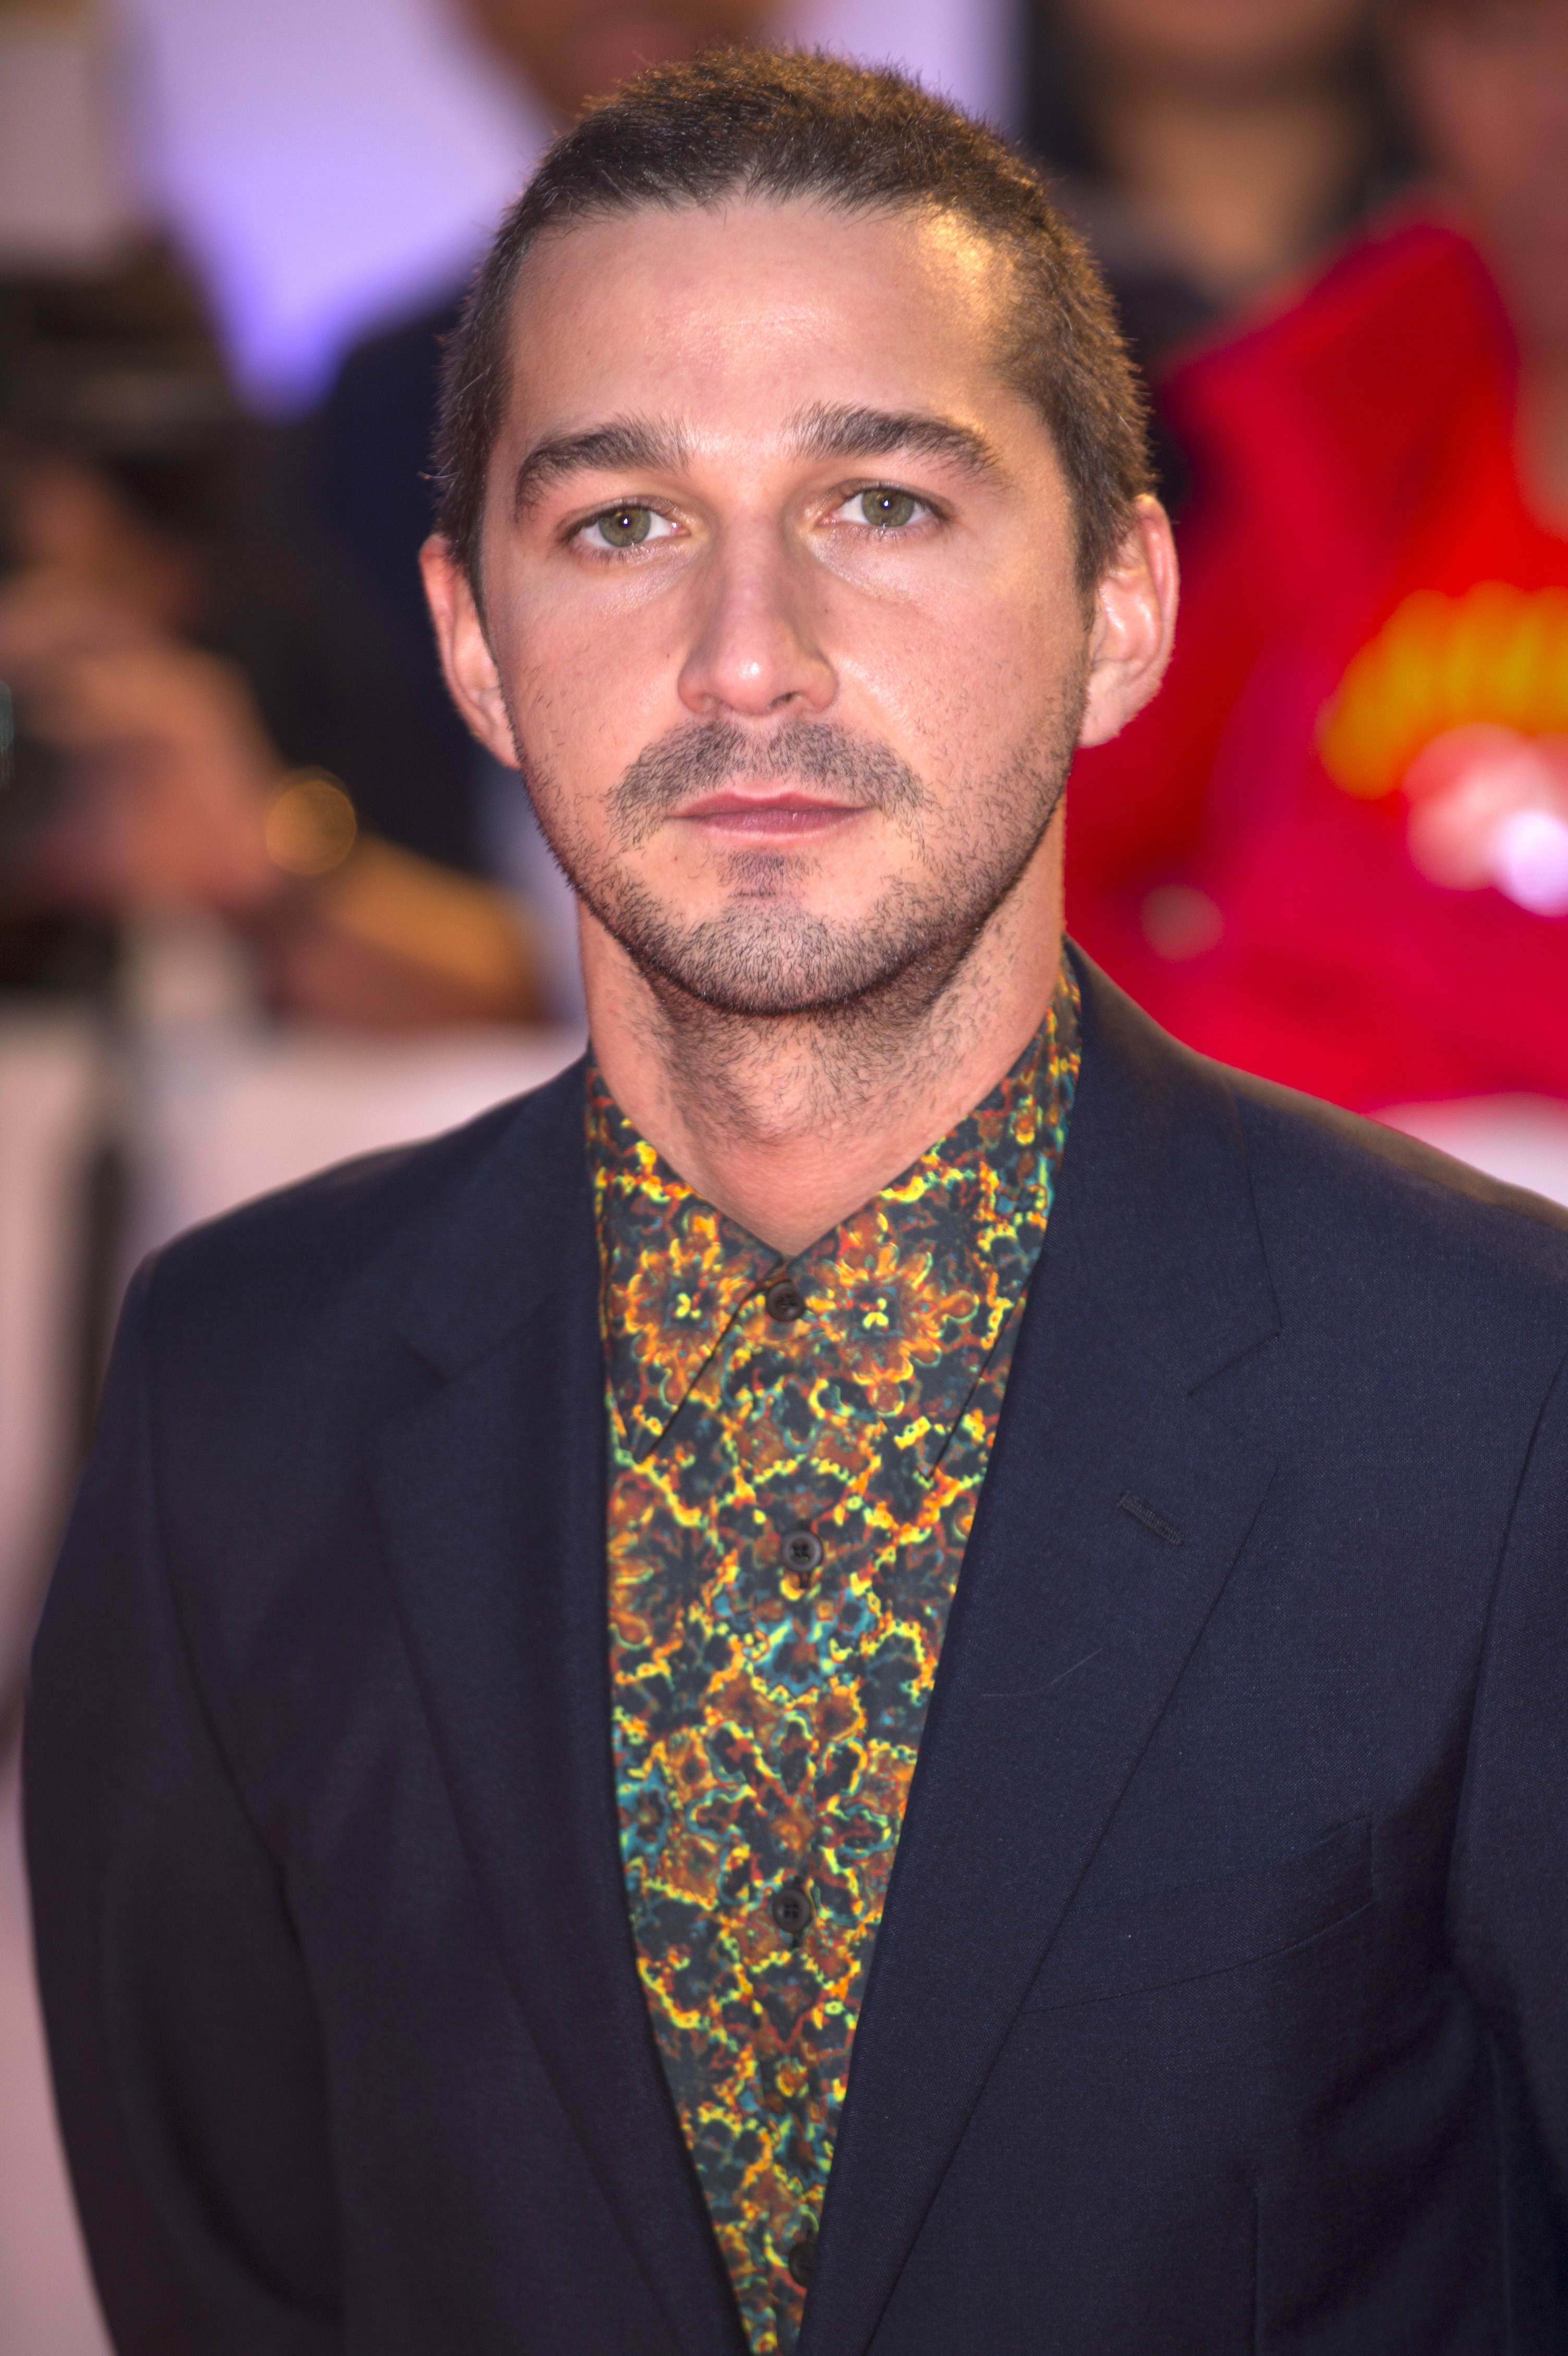 Shia LaBeouf attends the 42nd Toronto International Film Festival in Toronto on Sept. 7, 2017.